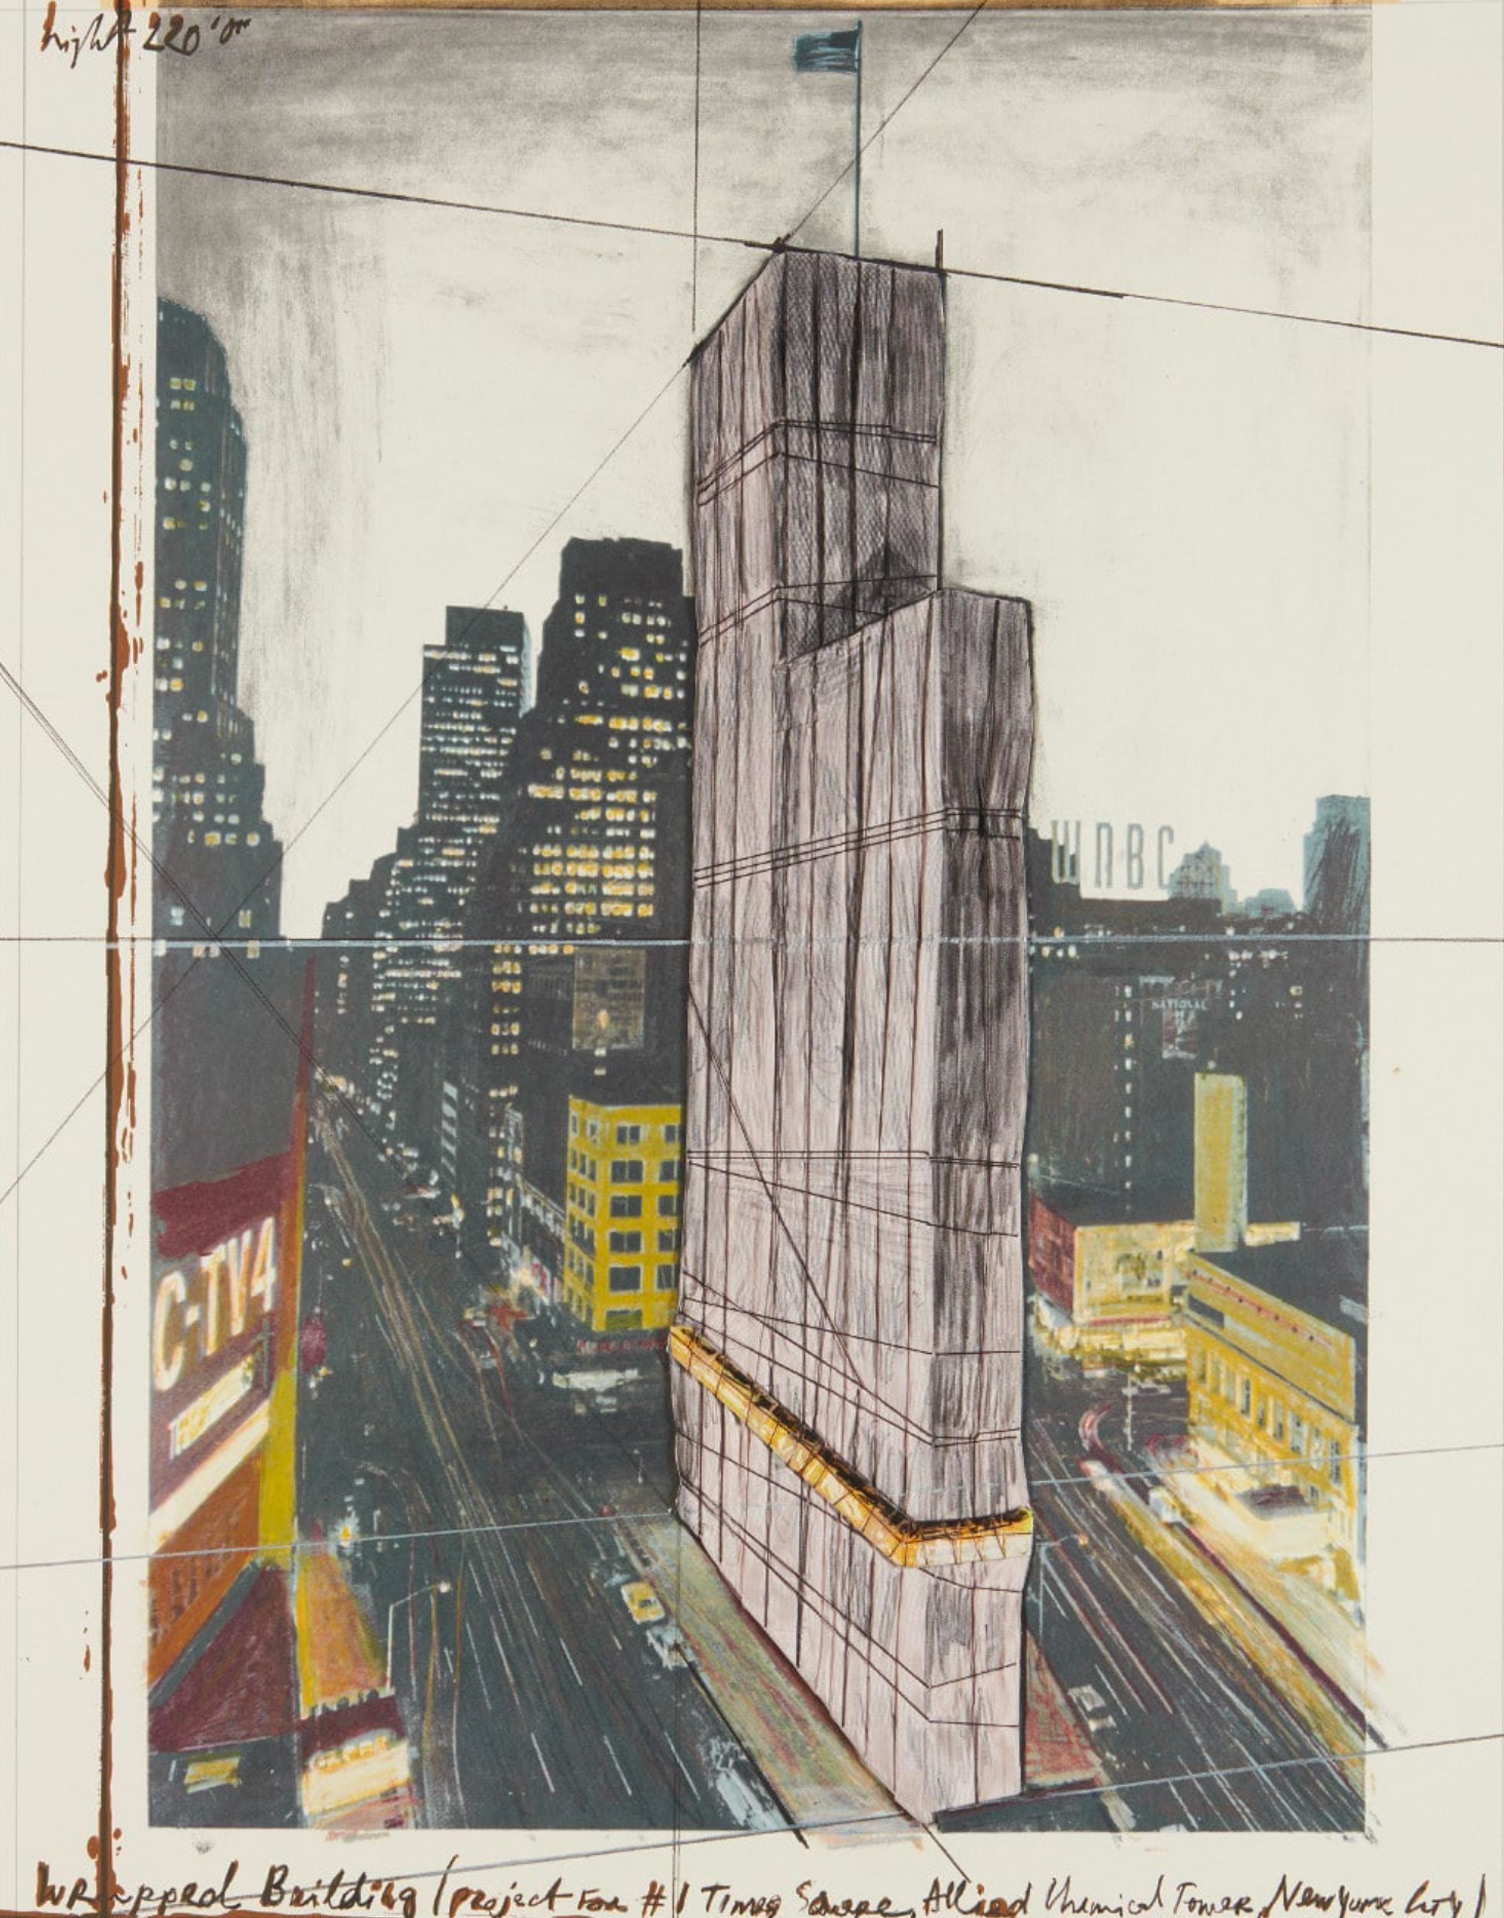 christo. Wrapped Building, Project for #1 Times Square, Allied Chemical Tower, New York, 1991